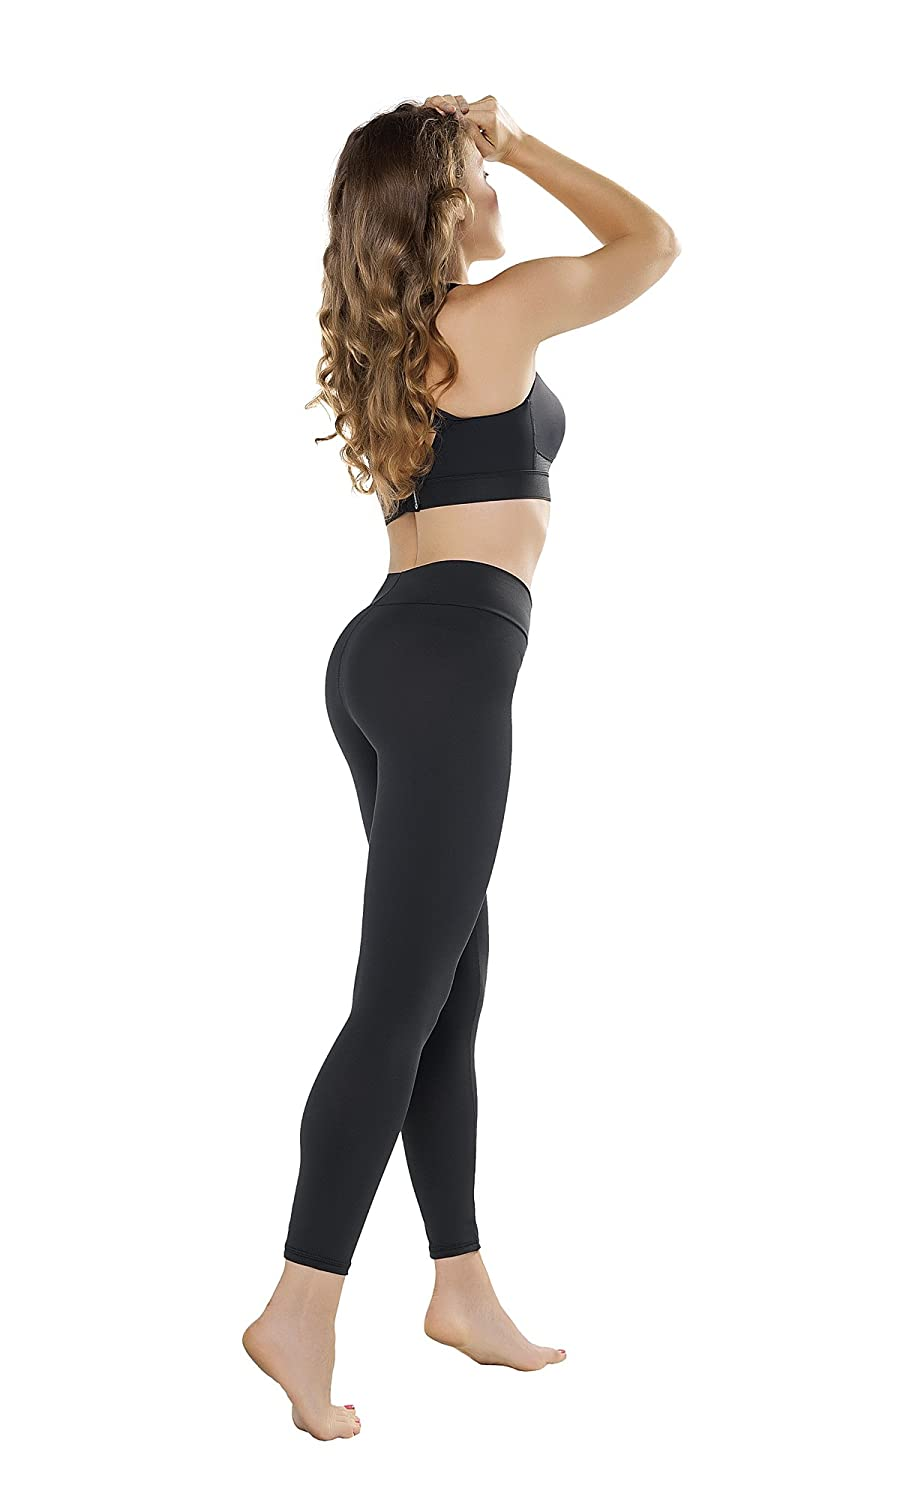 61fea184f314b gWINNER Women's Ladies Sport Comfort Soft Fitness Gym Yoga Spinning Push Up  Anti Cellulite Black Leggings: Amazon.co.uk: Clothing